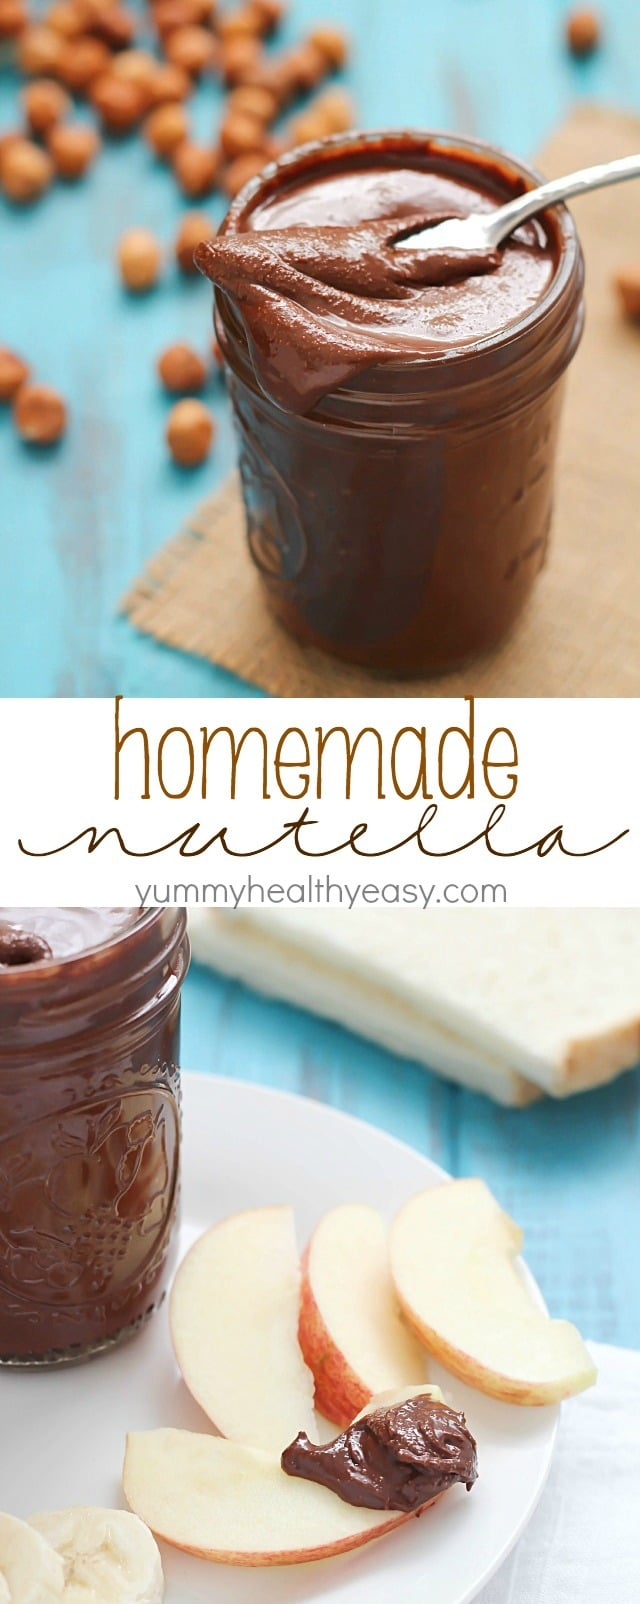 Did you know you can make Nutella at home?? It's easy! And dare I say, better than the original? Try it and see! Get this homemade nutella recipe on @yummyhealthyeasy